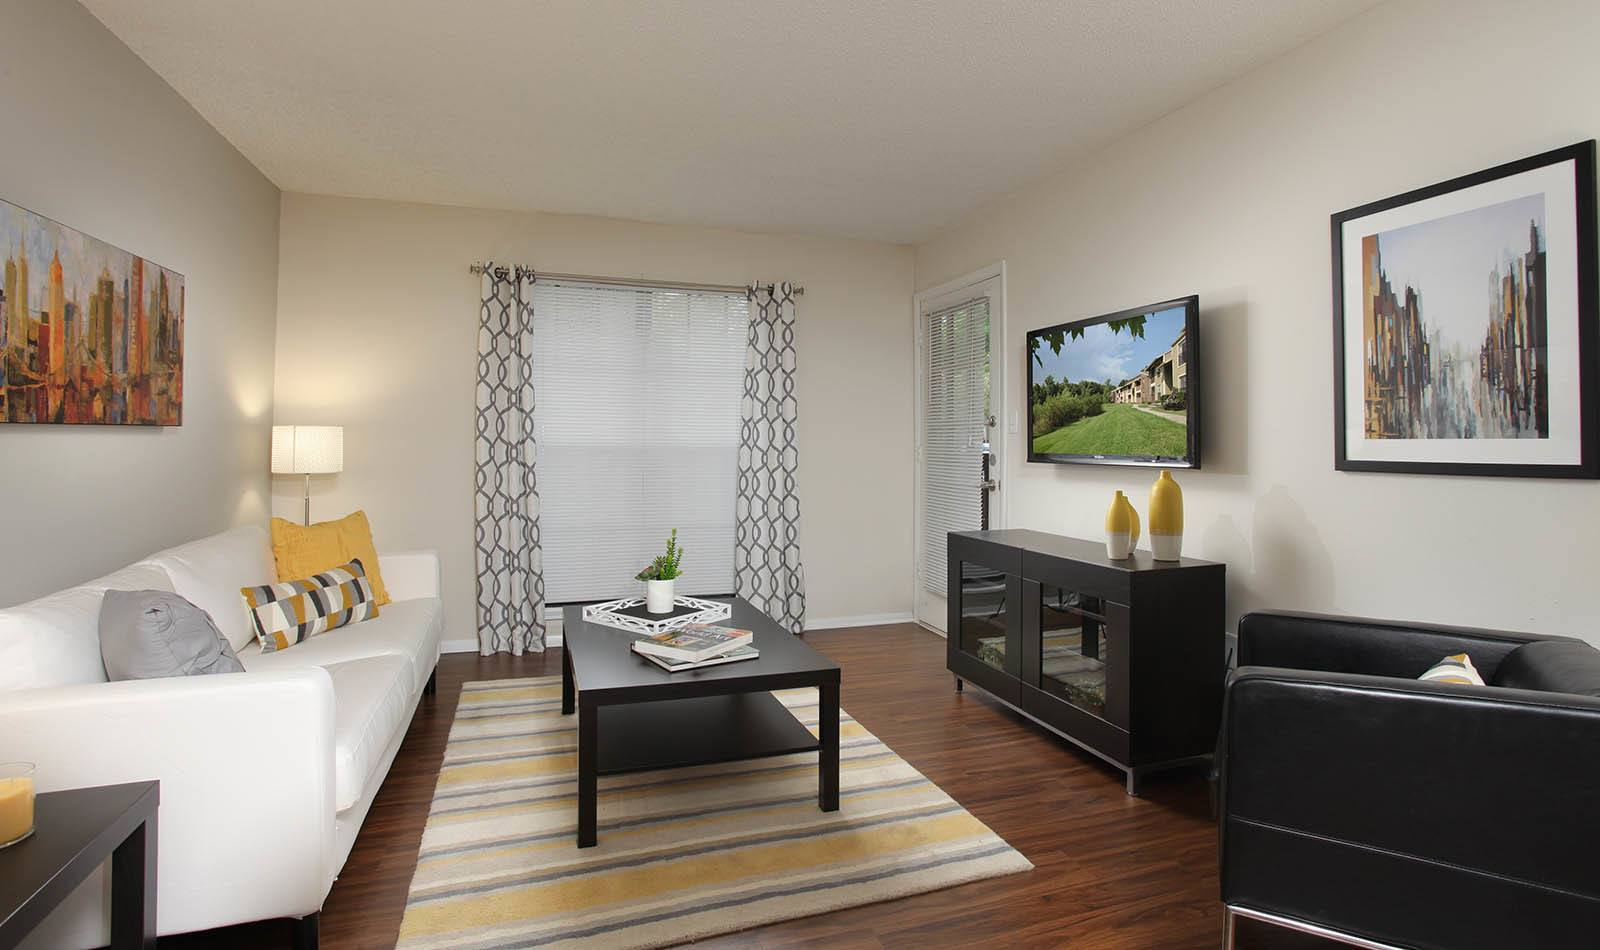 Living Room at Legend Oaks Apartments in Tampa